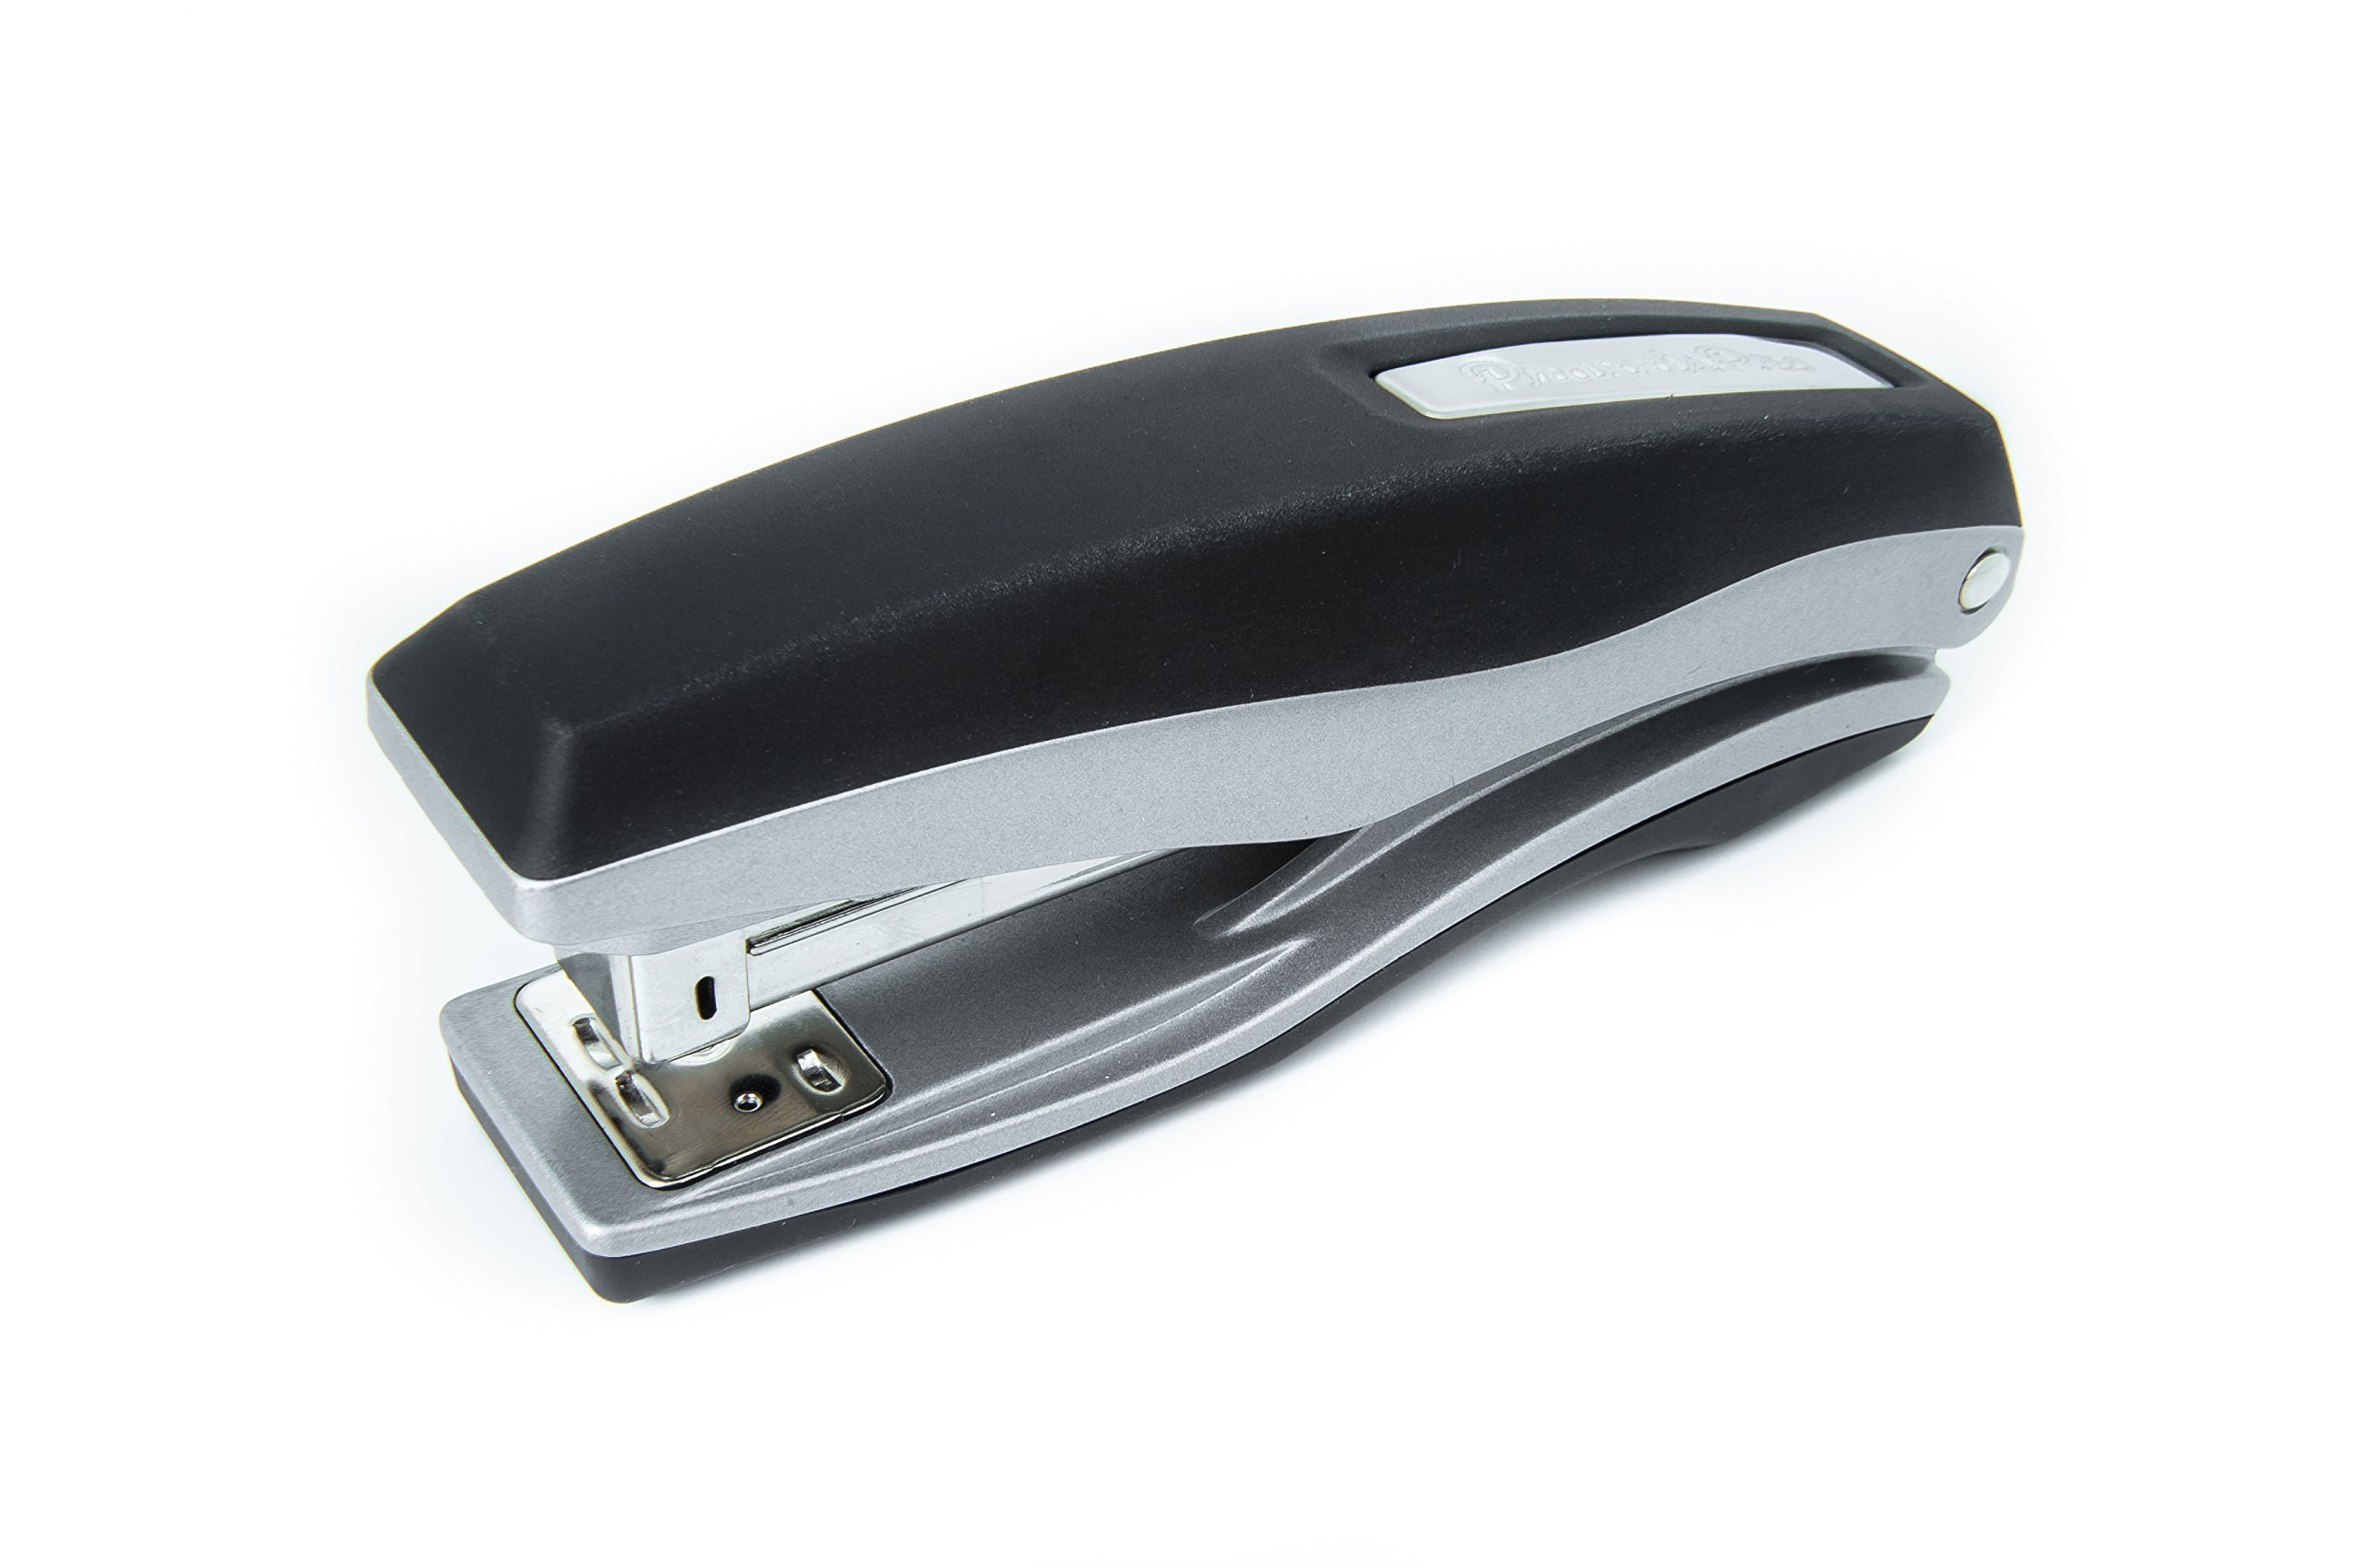 PraxxisPro Basileus Heavy Duty Metal Stapler Value Pack with 25 Sheet Capacity - Includes Staples and Staple Remover - Jam Free Stapler Set for Professional and Home Office Use (Silver)